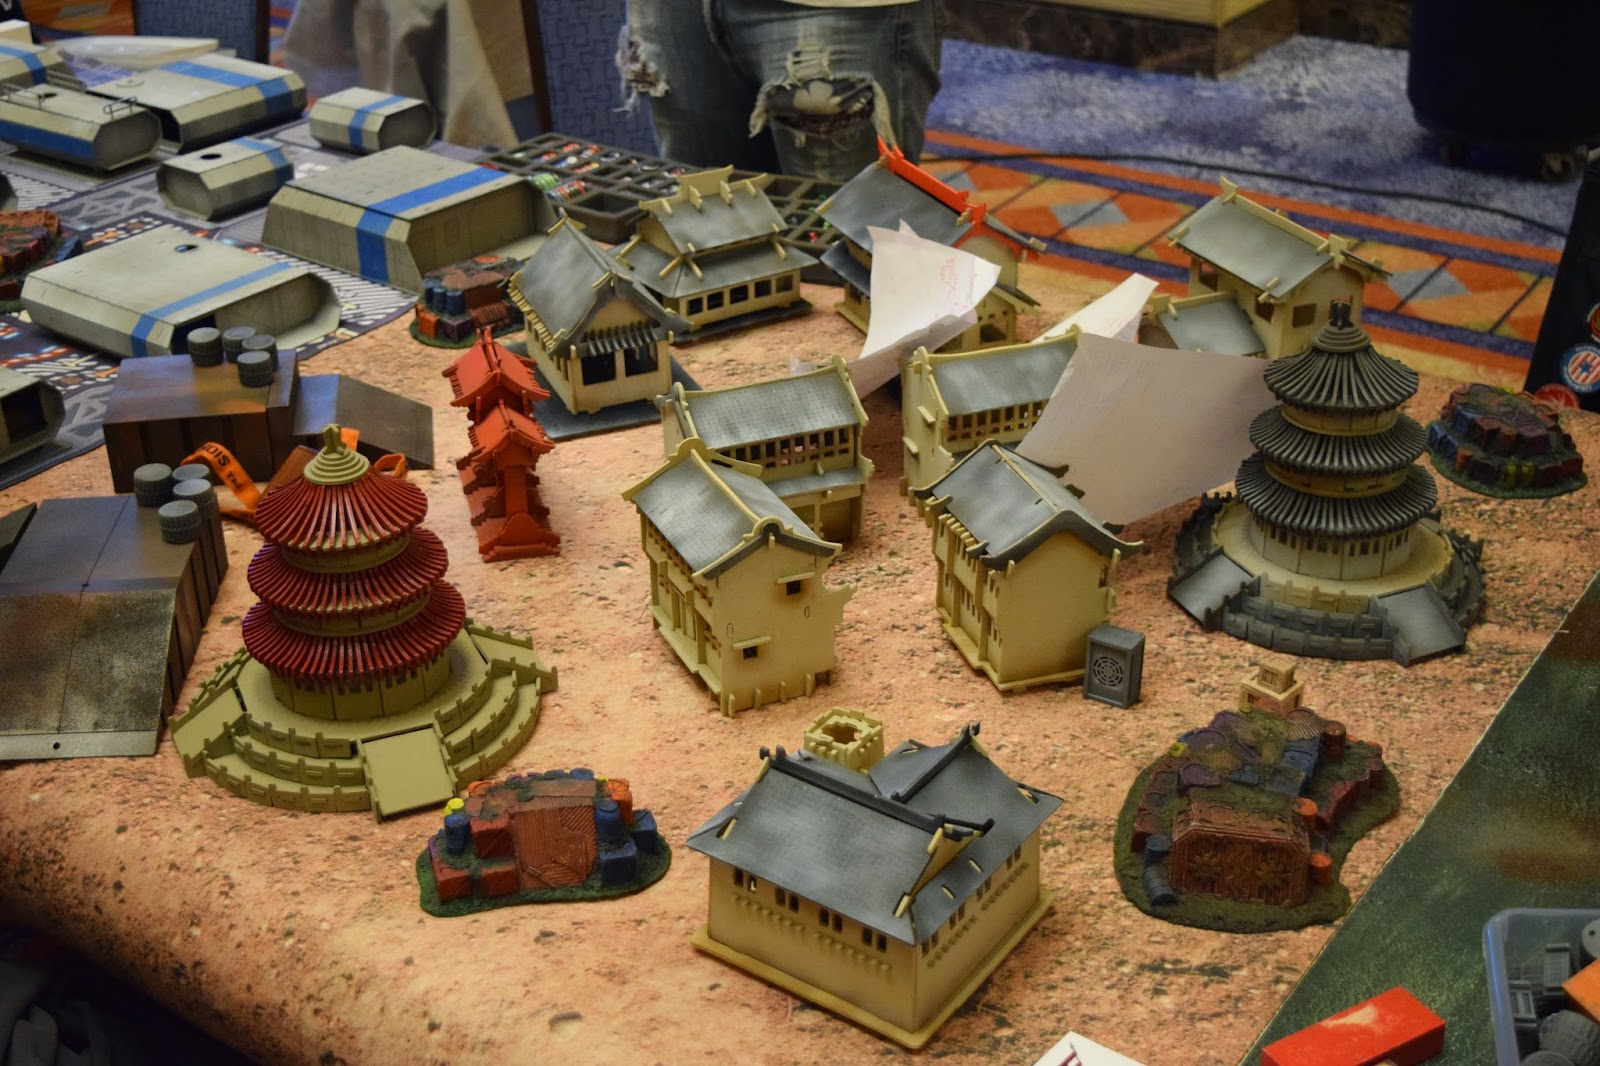 Brian Carlson Miniatures: Awesome Infinity Terrain